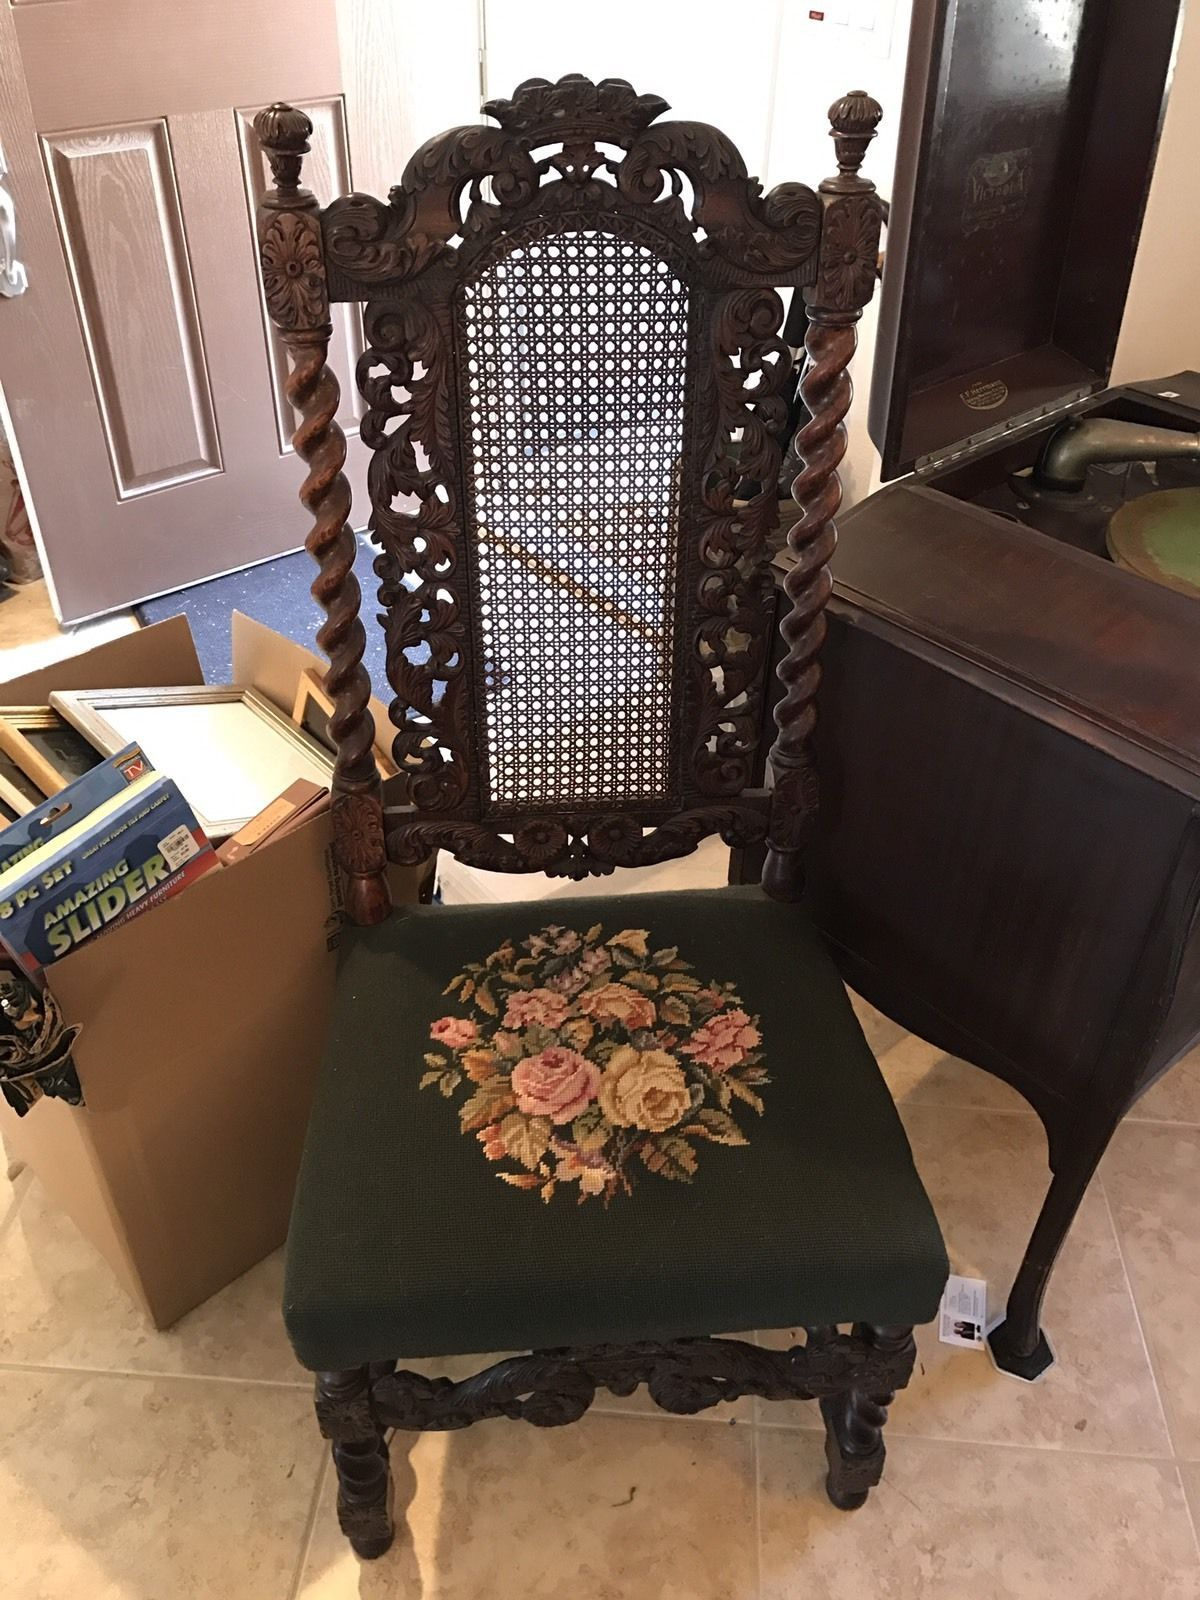 Antique Wood Cane Back Spindle Design & Needle Point Floral Cushion Chair |  eBay - Antique Wood Cane Spindle Design & Needle Point Floral Chair Twist